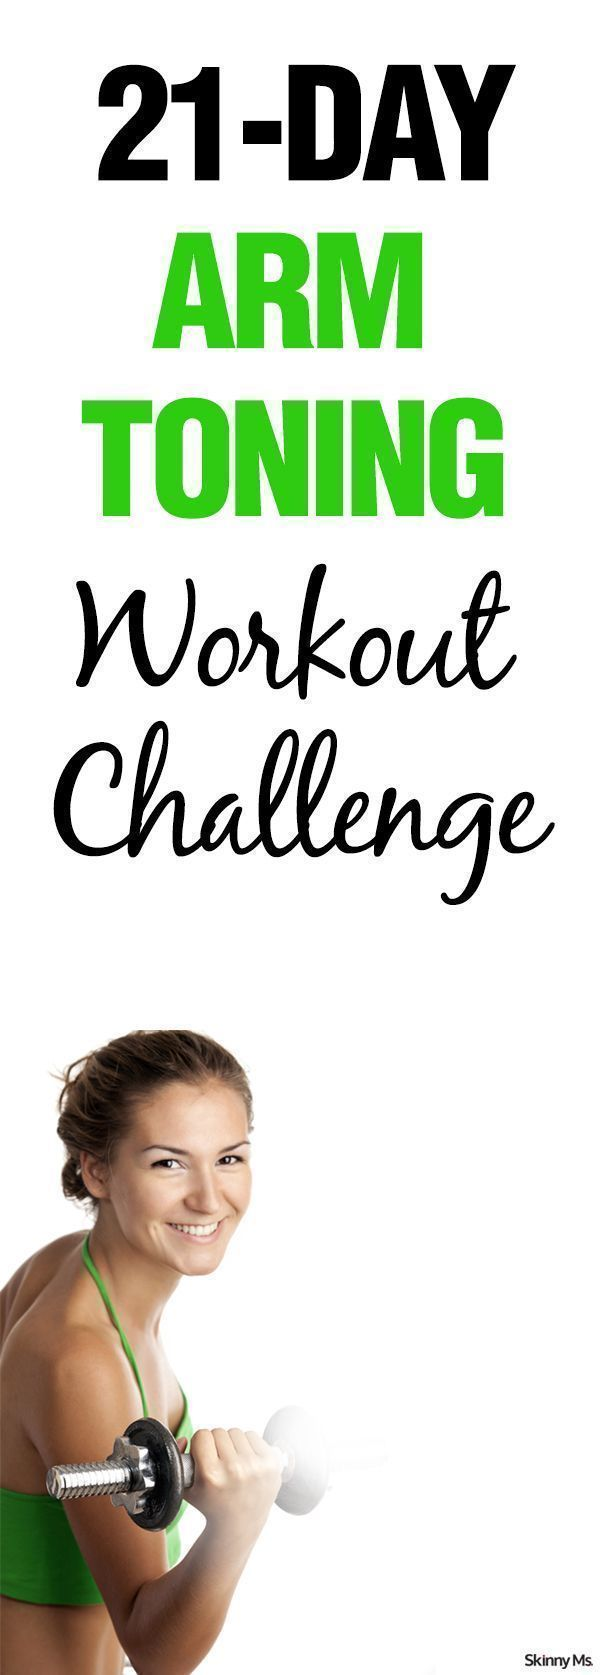 Just three weeks will get you to those beautiful buff biceps--The Skinny Ms. 21-Day Arm Toning Workout Challenge.